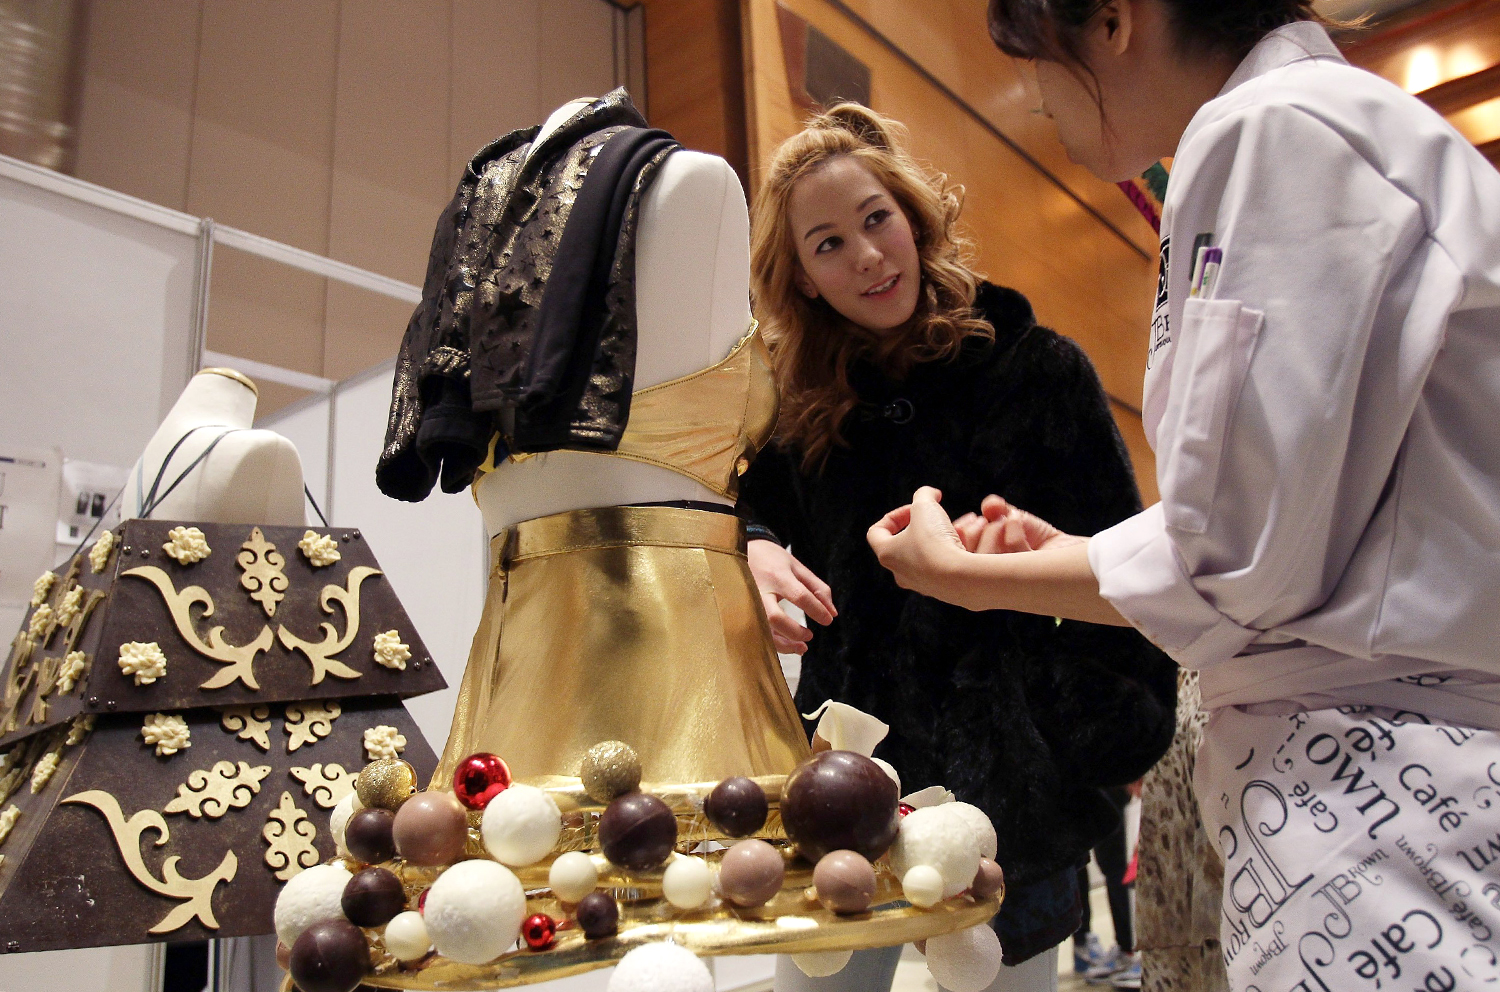 Cocoa Chanel? Fashion show features chocolate couture - TODAY.com